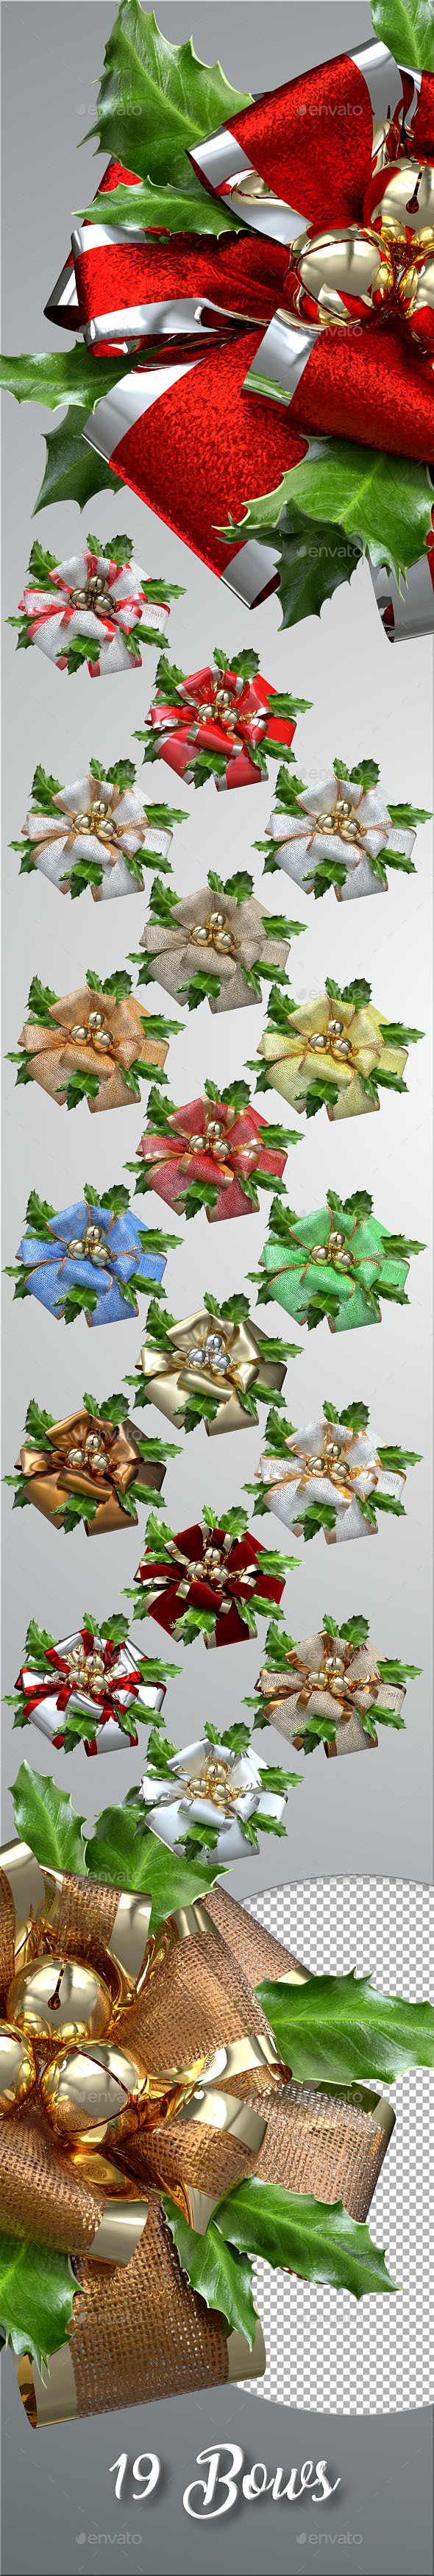 Christmas & Wedding Bows - Miscellaneous 3D Renders